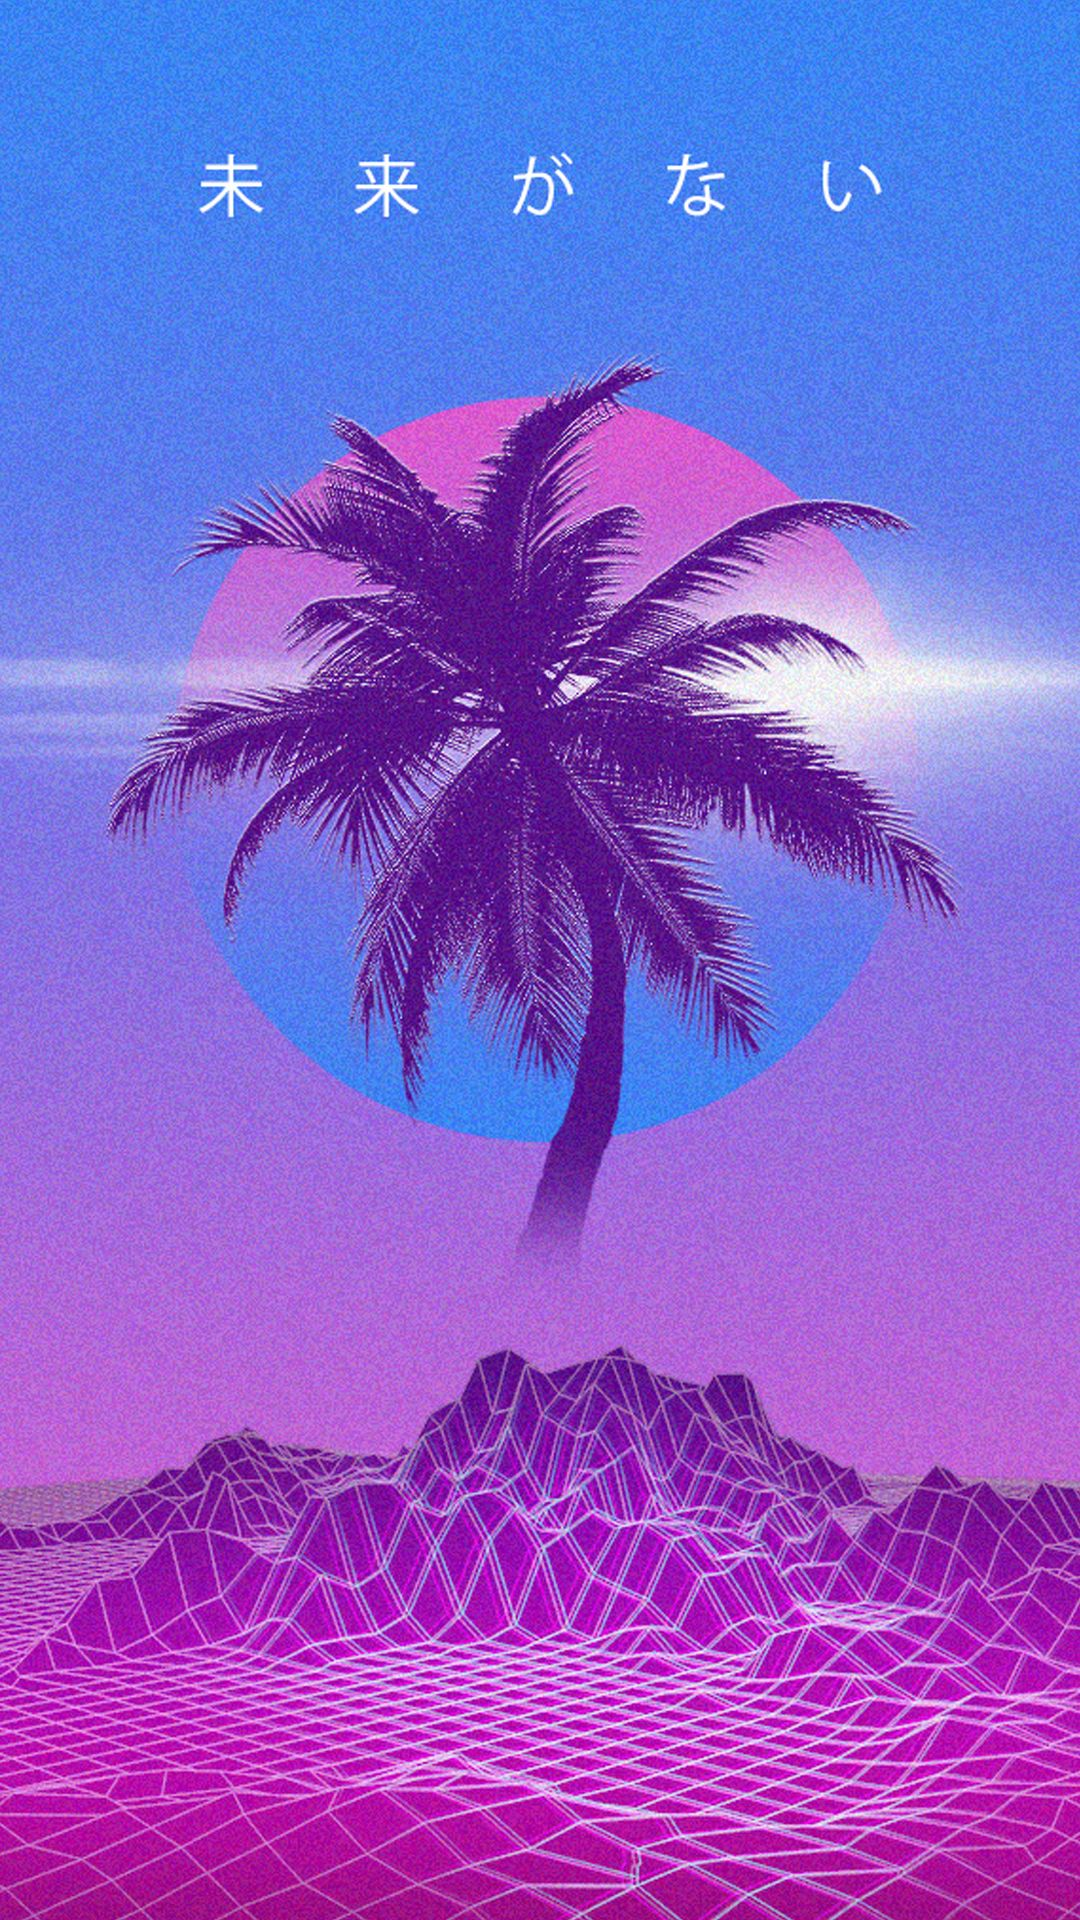 The Most Awesome Images On The Internet Vaporwave